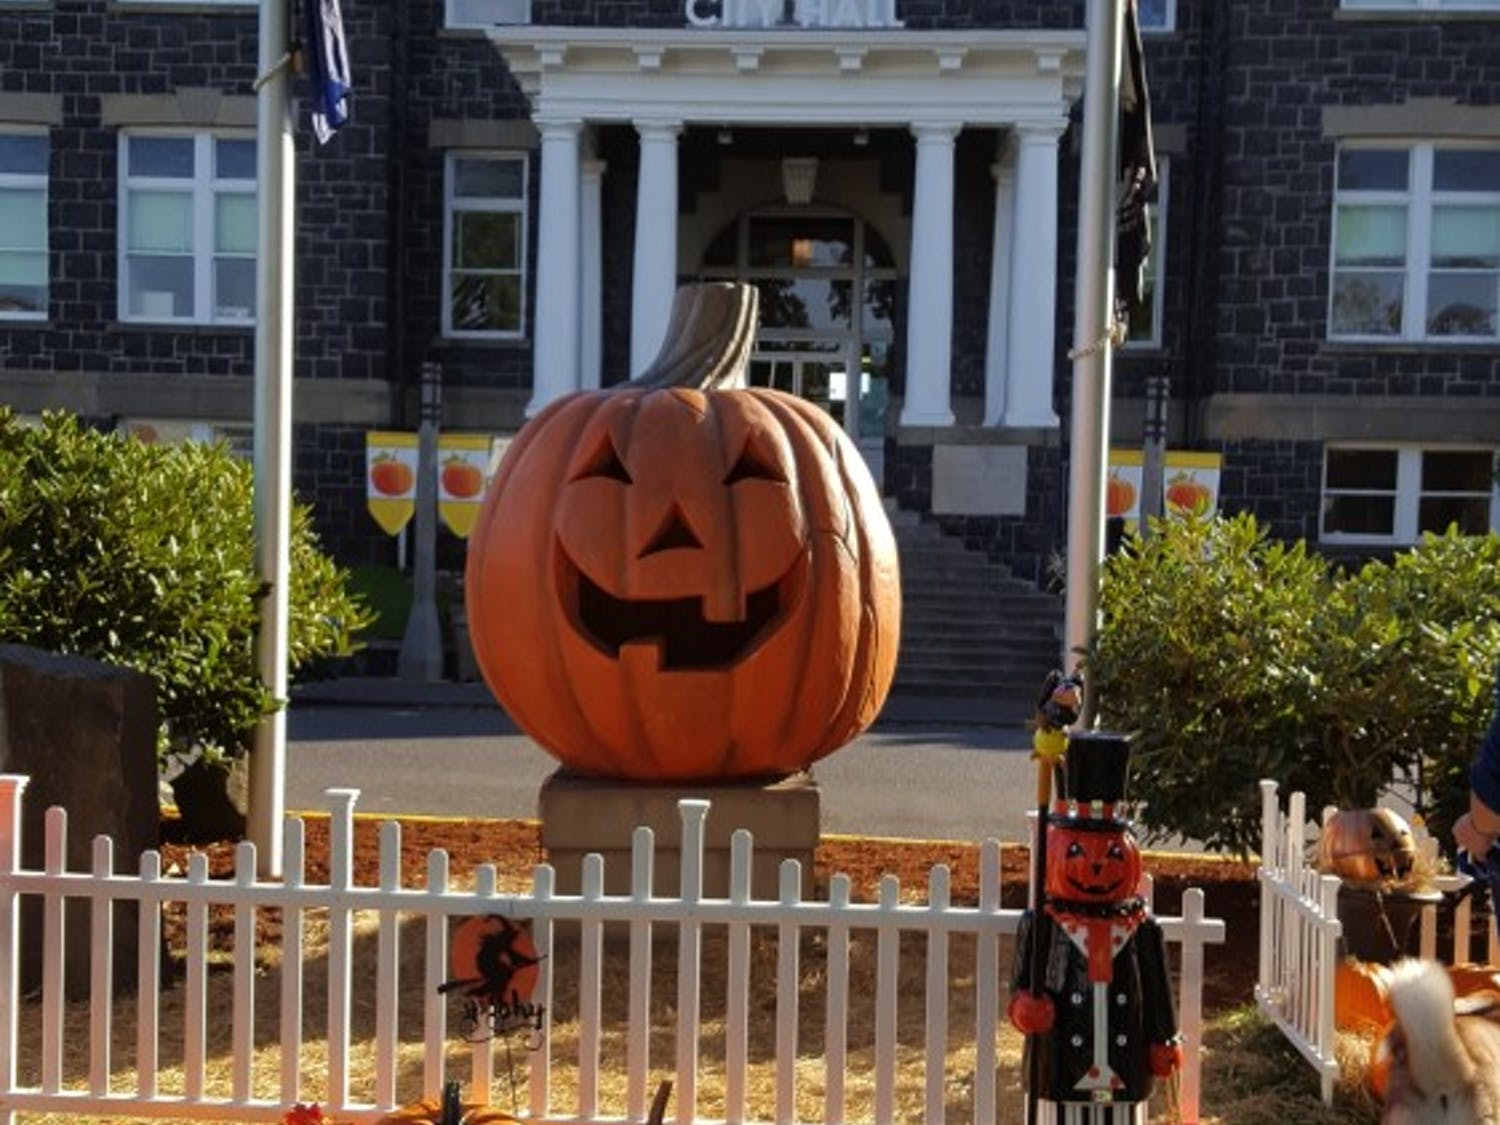 The town square of the 1998 film, Halloweentown.